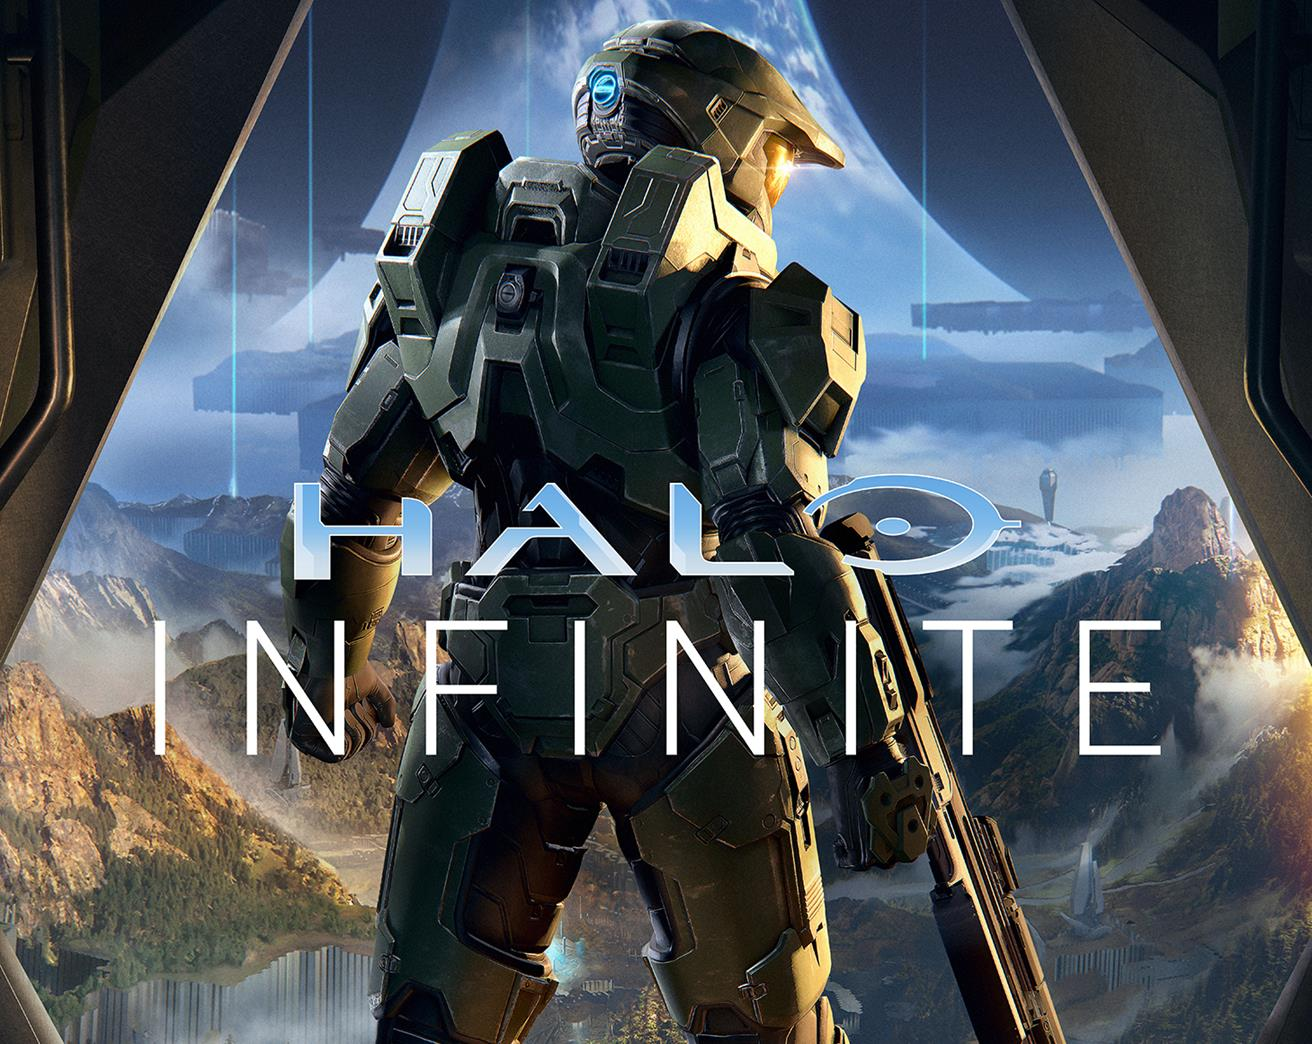 Halo Infinite's next big moment is E3 2020, but beta tests are coming - VG247